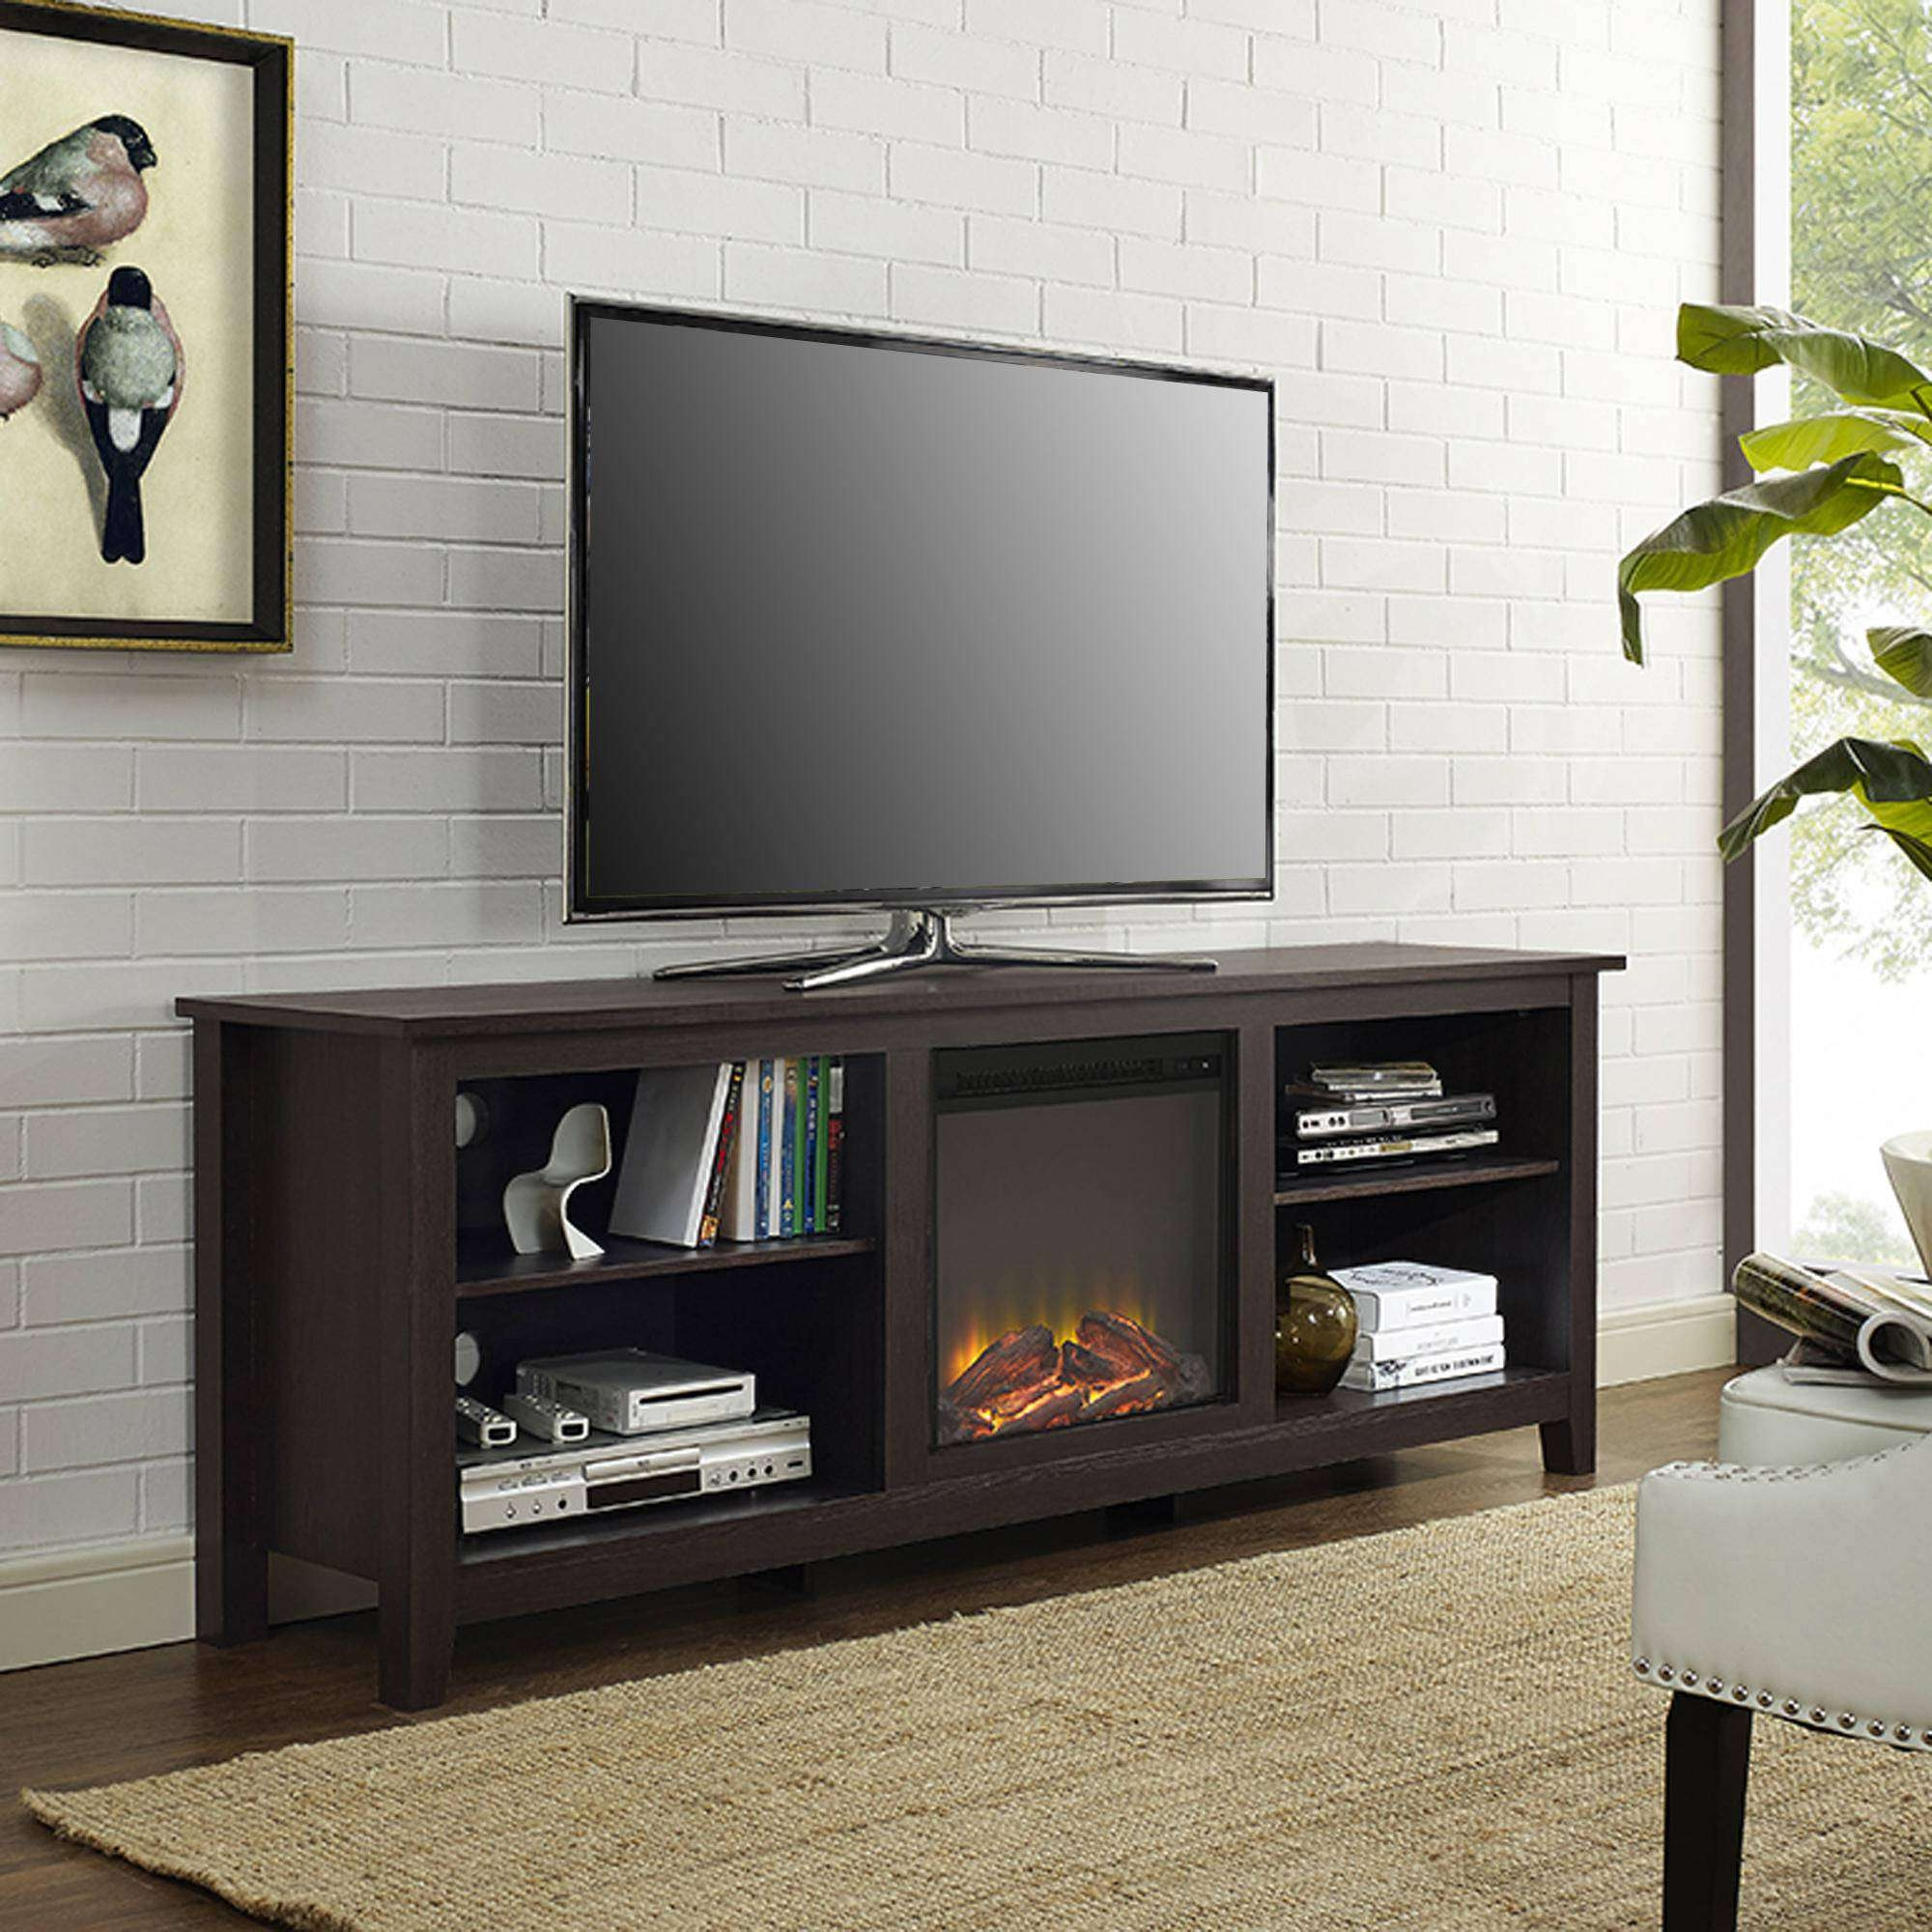 Walker Edison Wood Tv Stand With Fireplace, For Tvs Up To 70 Within Tv Stands For 70 Inch Tvs (View 20 of 20)